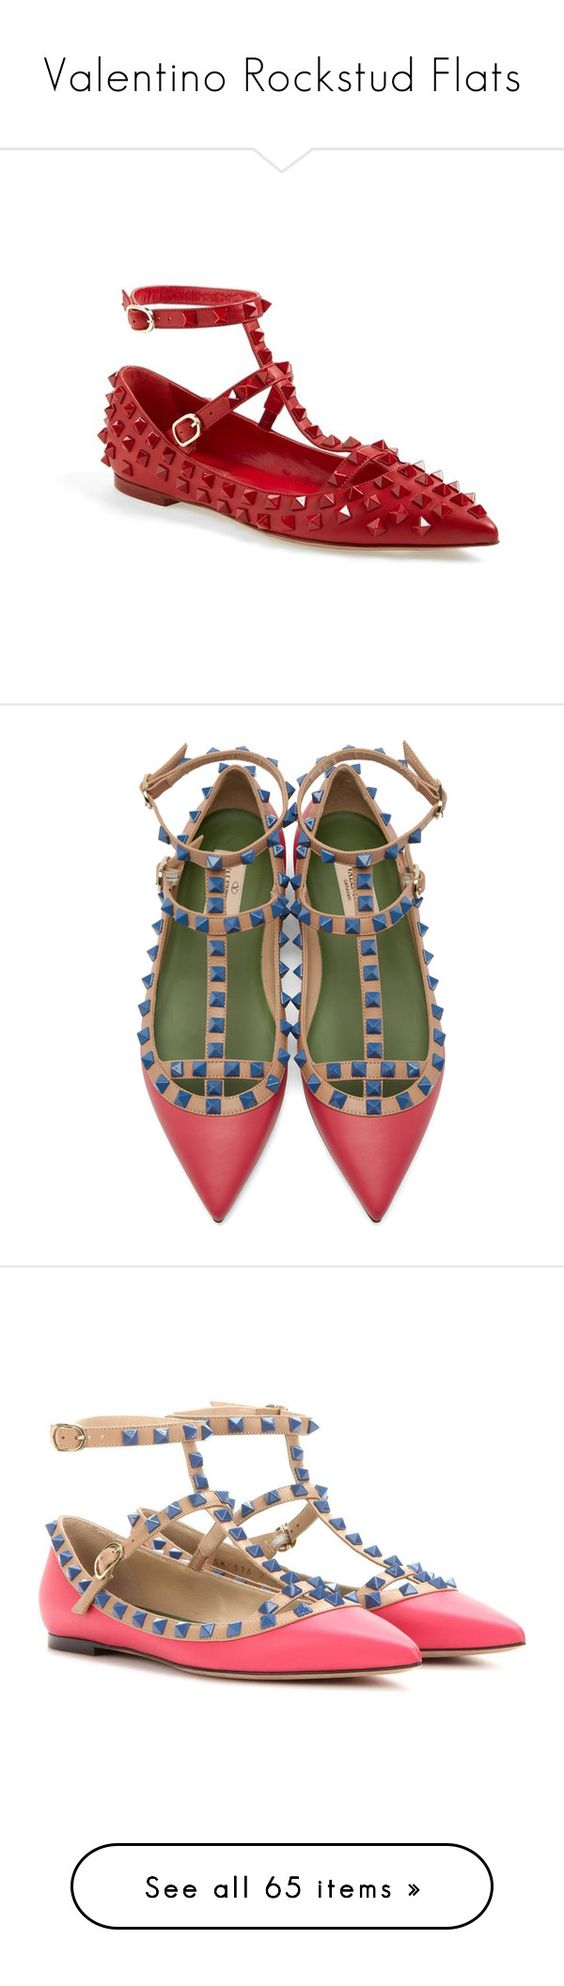 """Valentino Rockstud Flats"" by leanne-mcclean ❤ liked on Polyvore featuring shoes, flats, flat shoes, t bar flats, t strap flats, strappy flats, pointed-toe ankle-strap flats, leather sole shoes, pink flats and flat heel shoes"